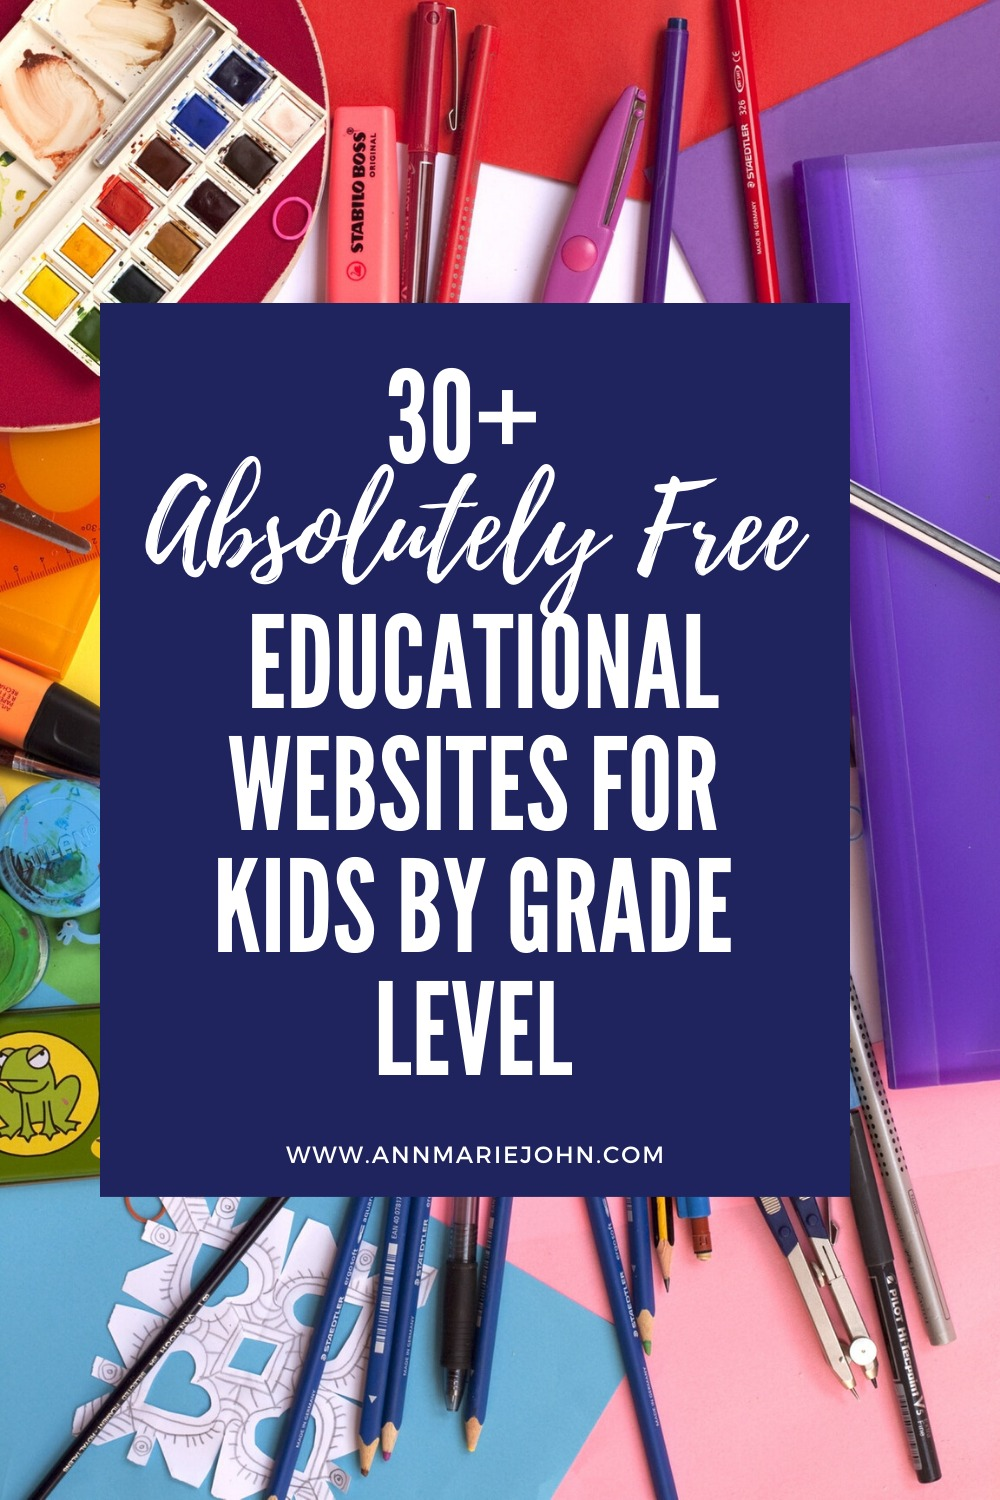 hight resolution of 30+ Totally Free Educational Websites for Kids by Grade Level - AnnMarie  John